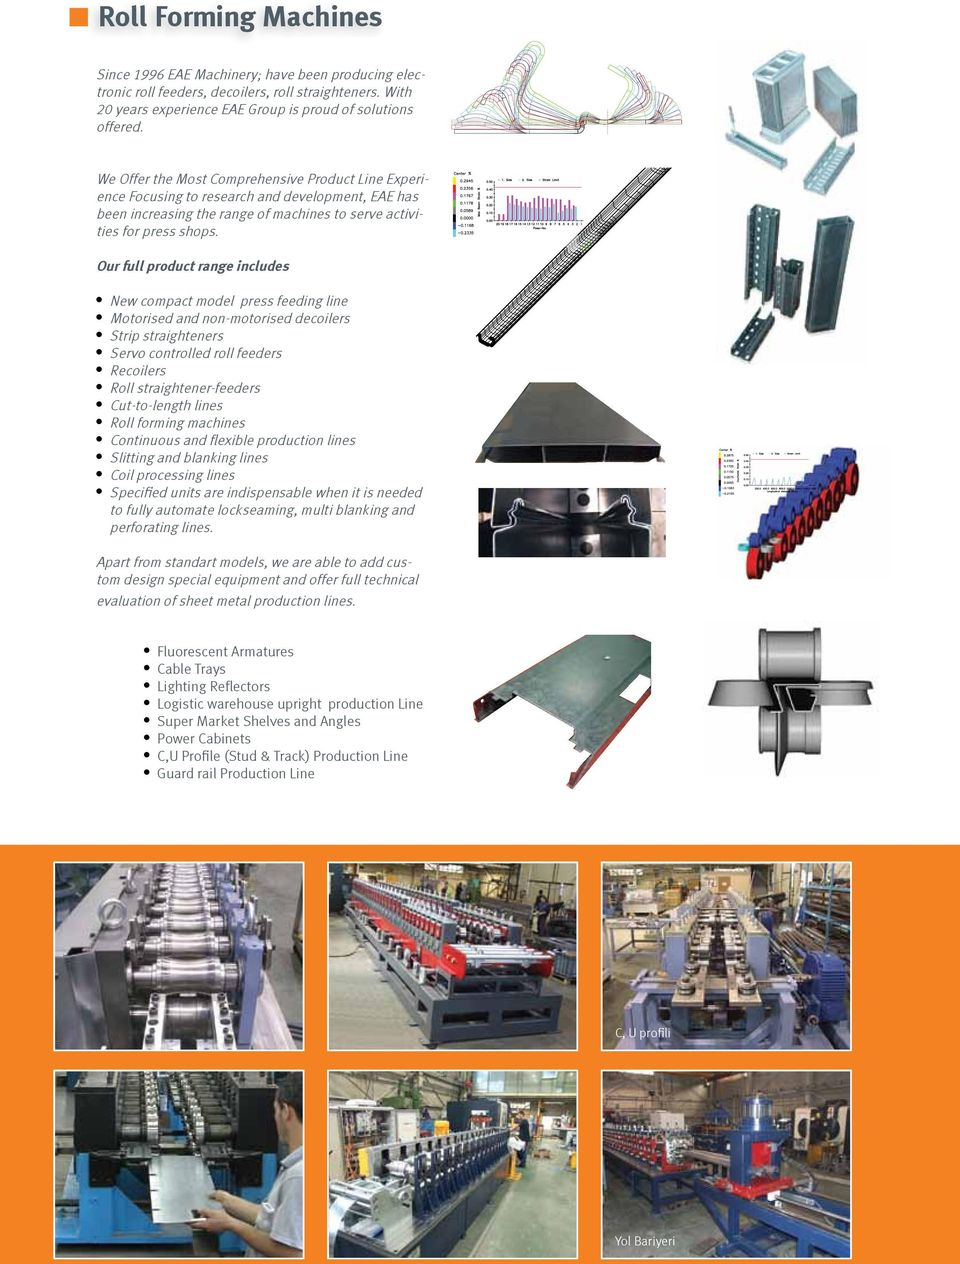 Our full product range includes New compact model press feeding line Motorised and non-motorised decoilers Strip straighteners Servo controlled roll feeders Recoilers Roll straightener-feeders